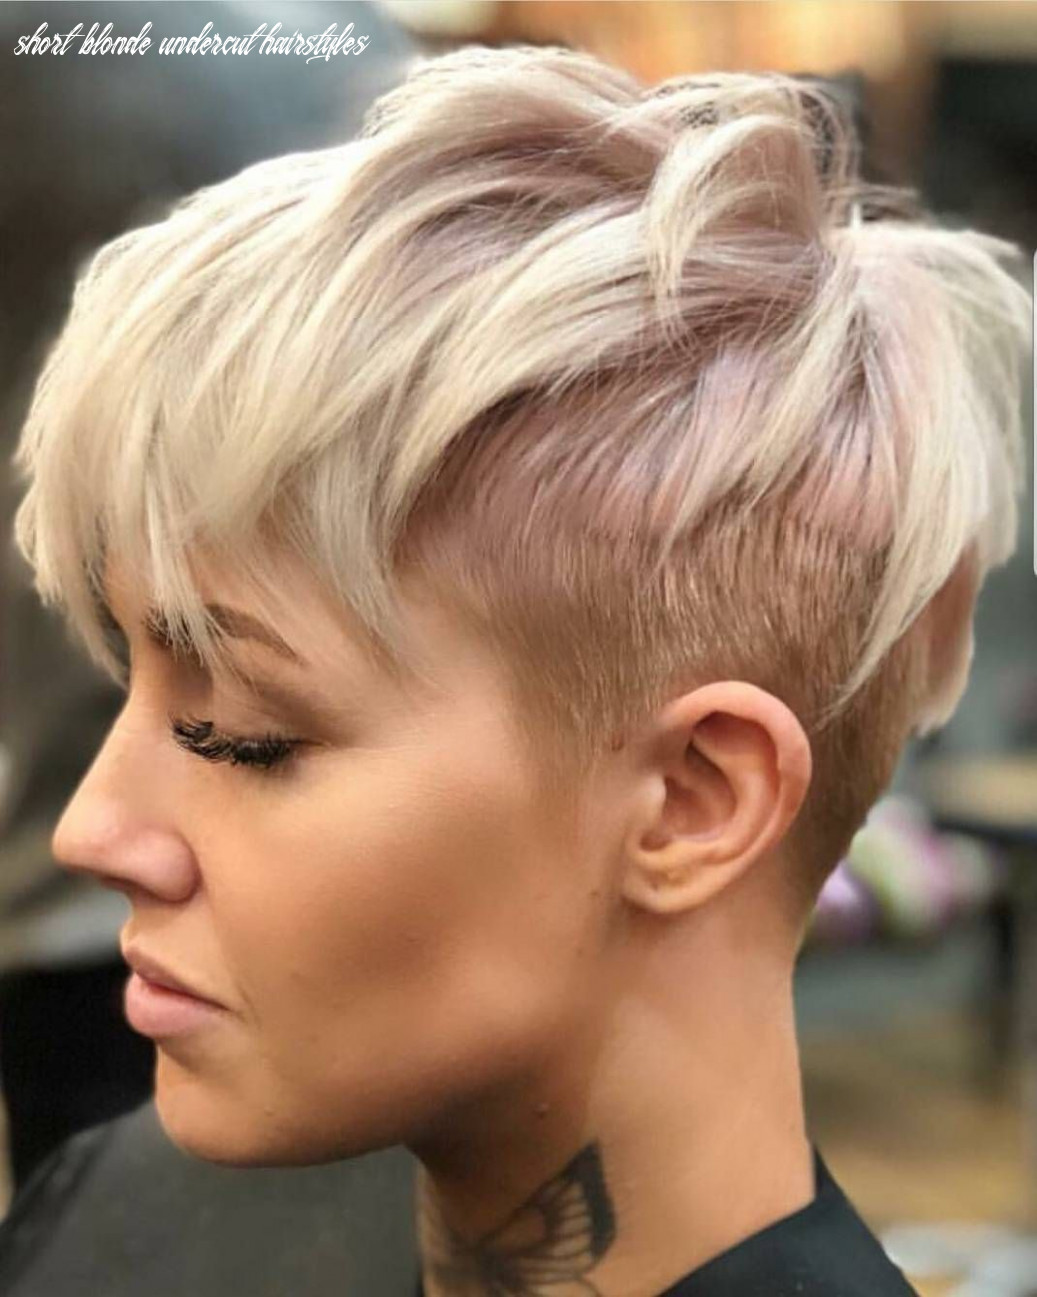 Pin on pixie perfection short blonde undercut hairstyles